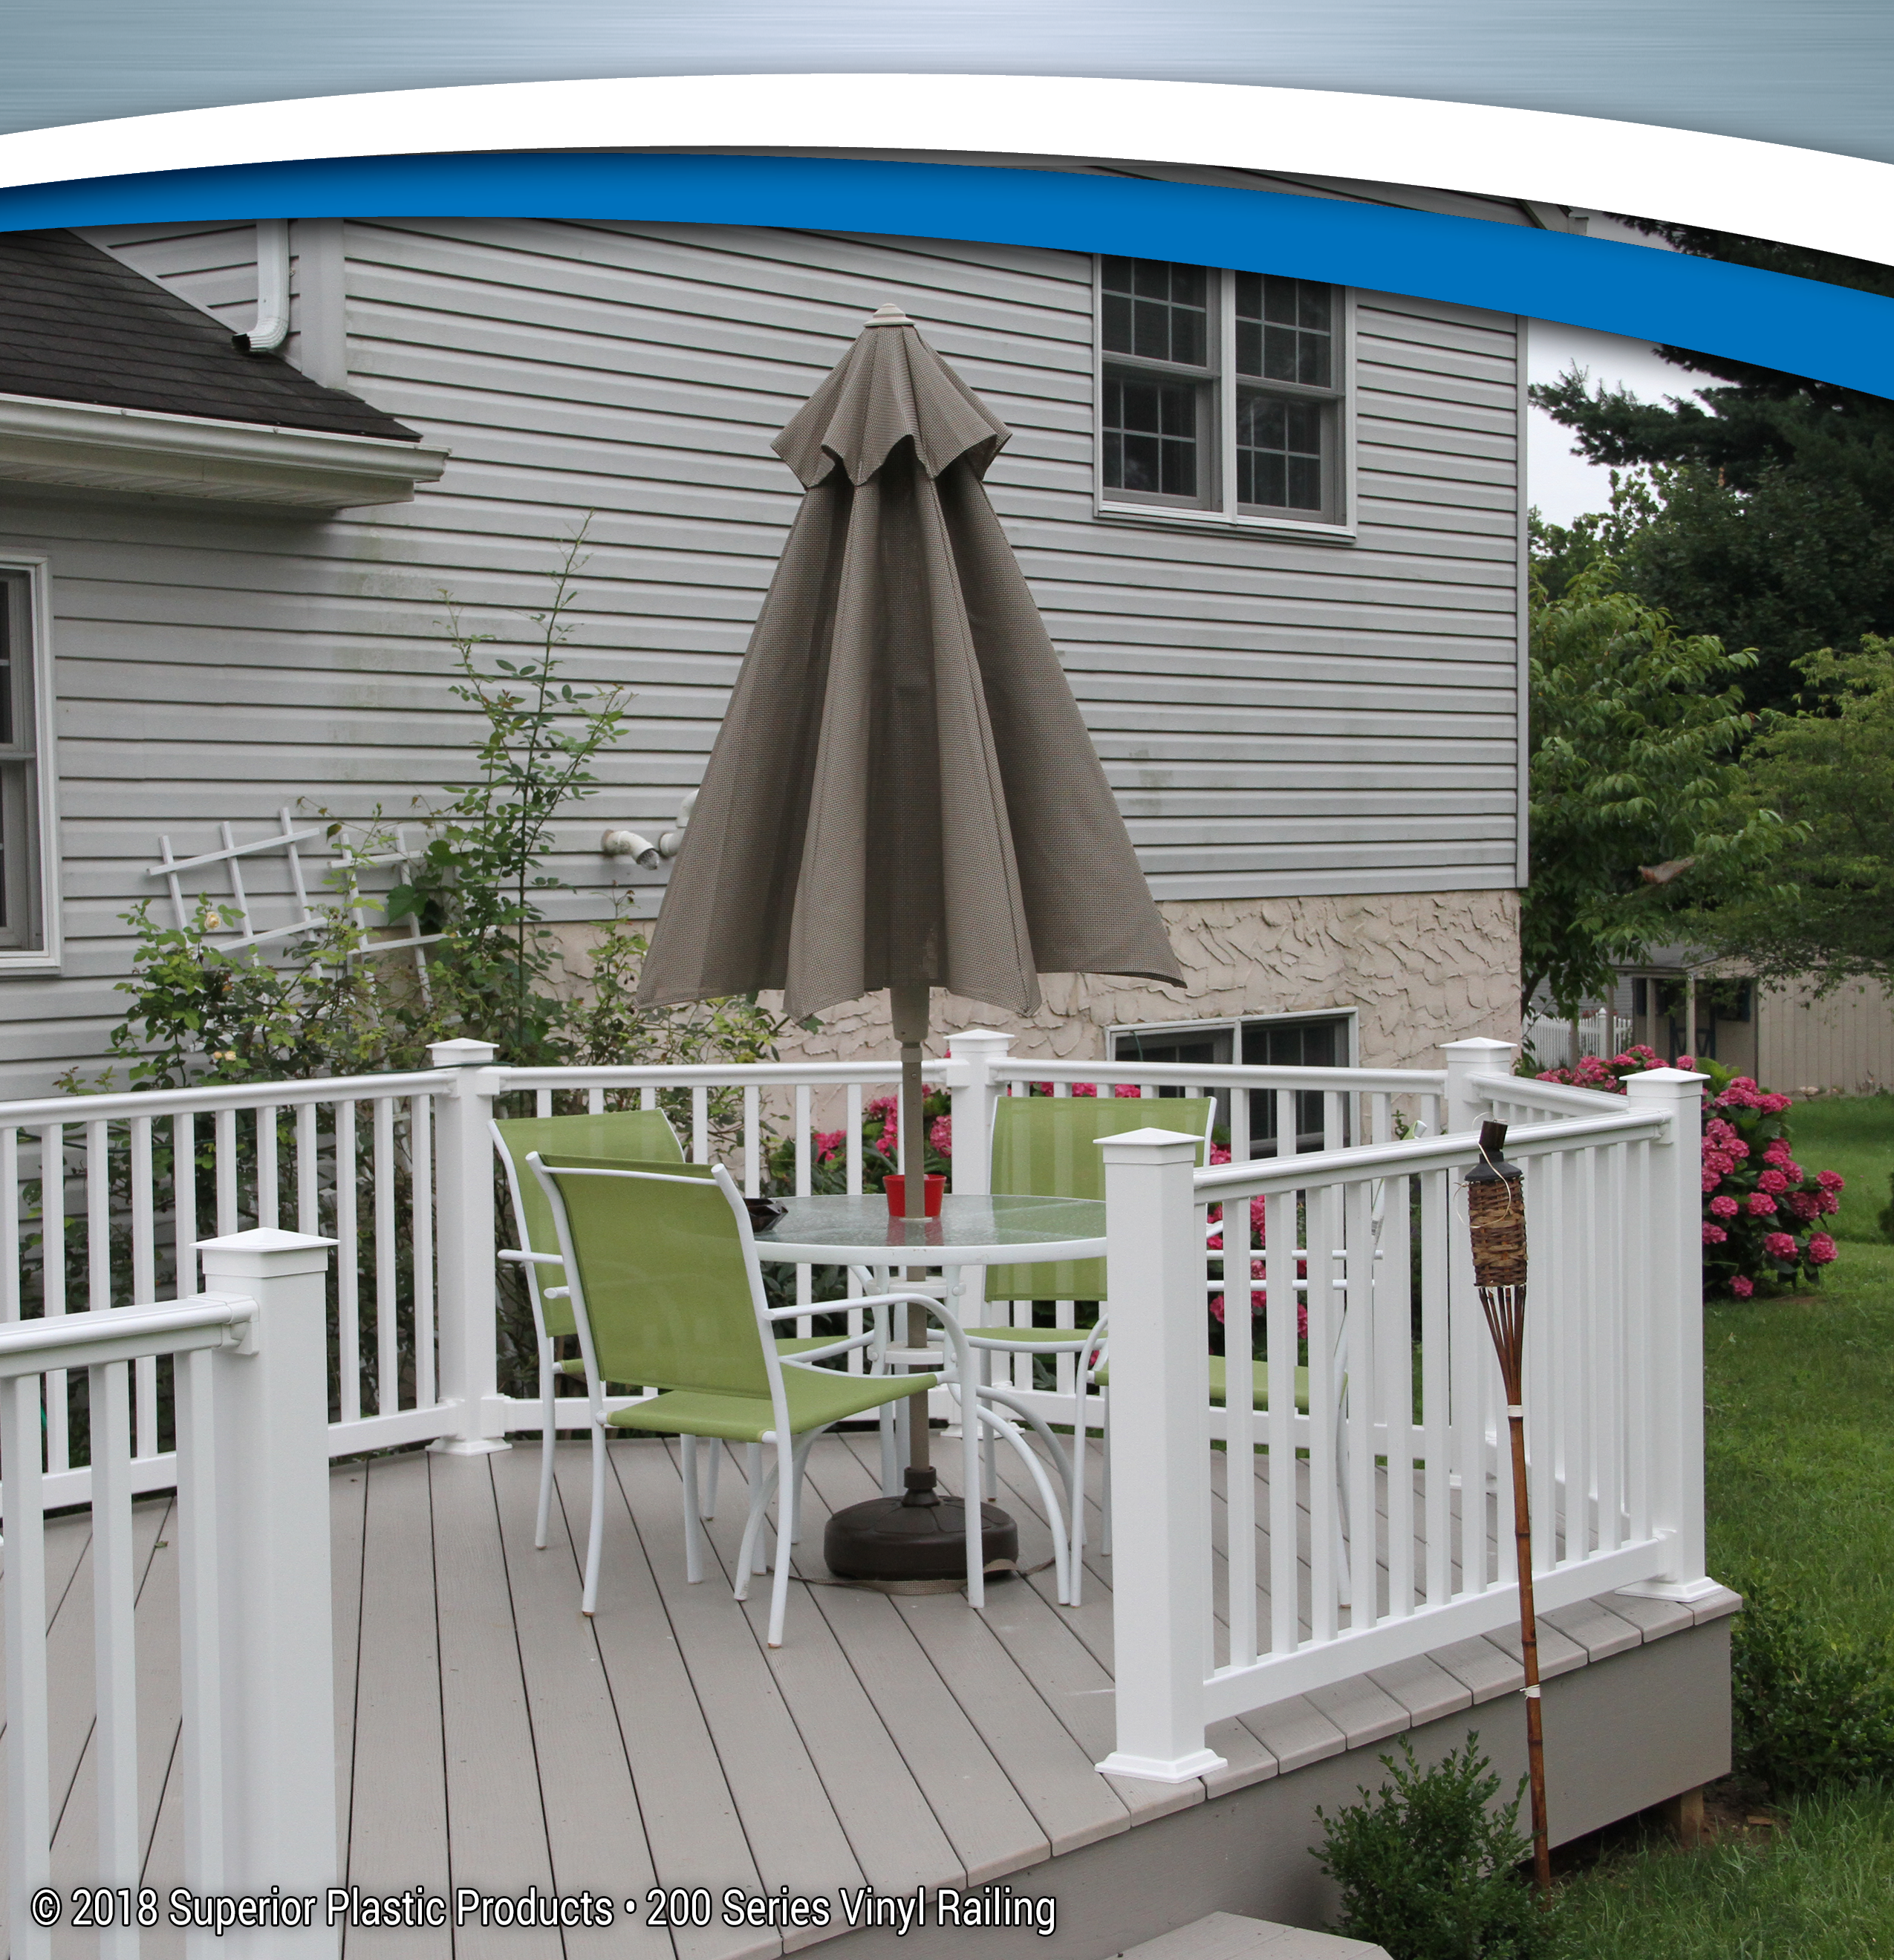 200 Series Vinyl Railing - Superior Plastic Products